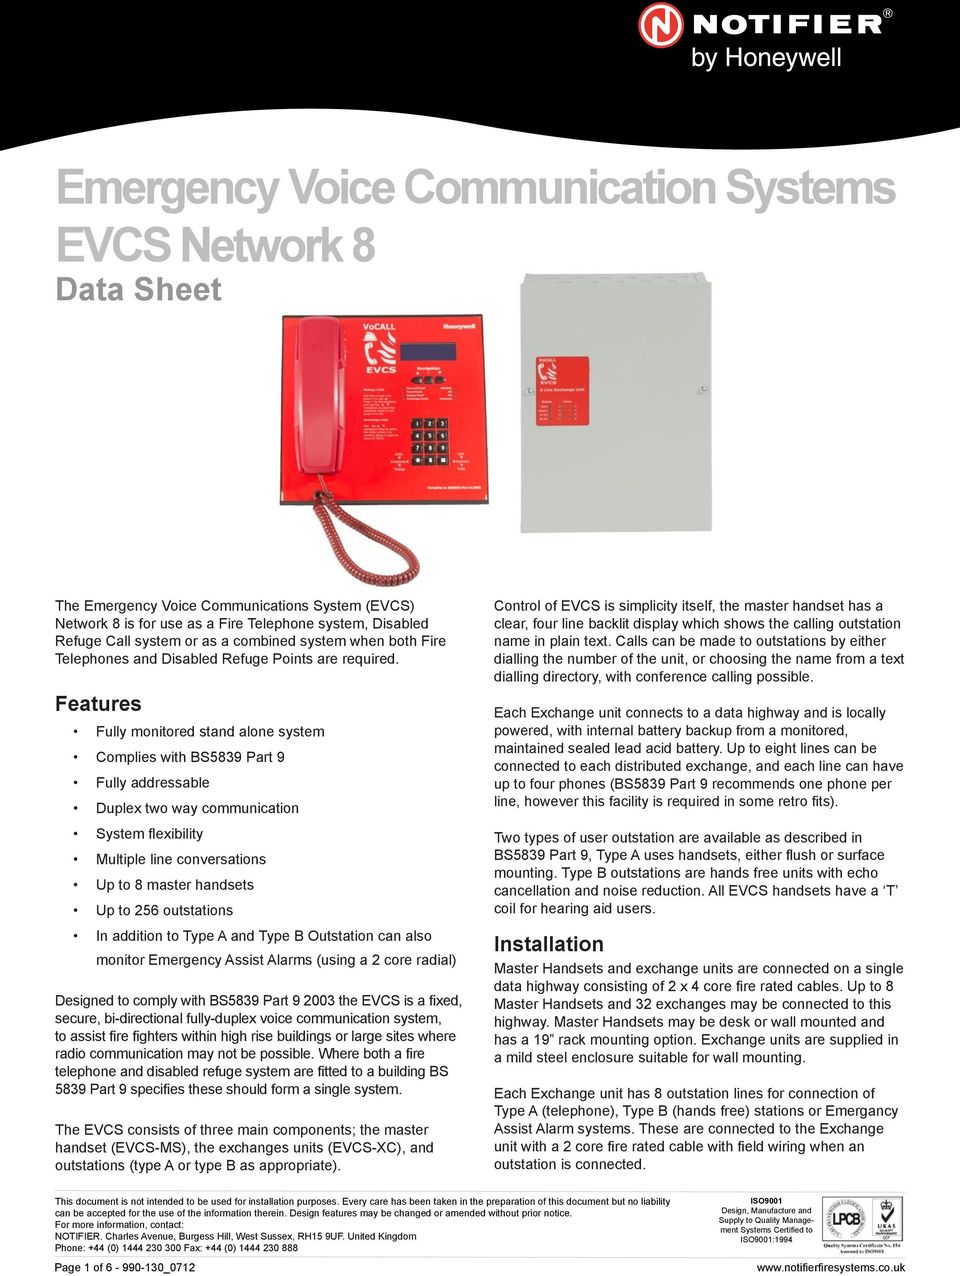 Emergency Voice Communication Systems Evcs Network 8 Data Sheet Pdf Wiring Additionally Phone Cable Diagram Besides Telephone Features Fully Monitored Stand Alone System Complies With Bs5839 Part 9 Addressable Duplex Two Way